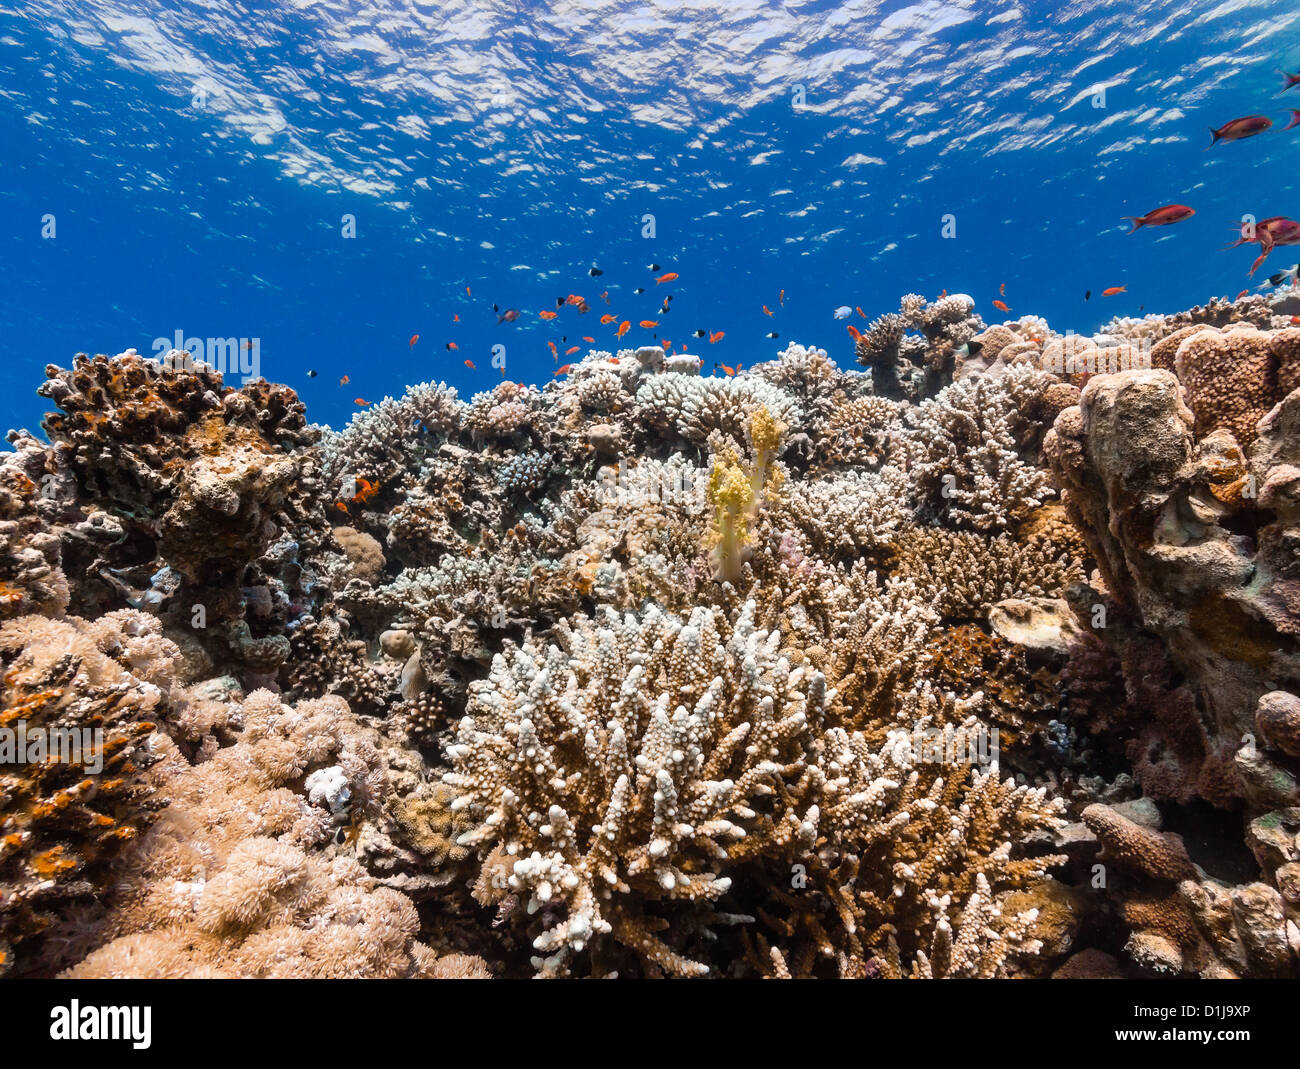 Hard corals and tropical fish on a coral reef - Stock Image